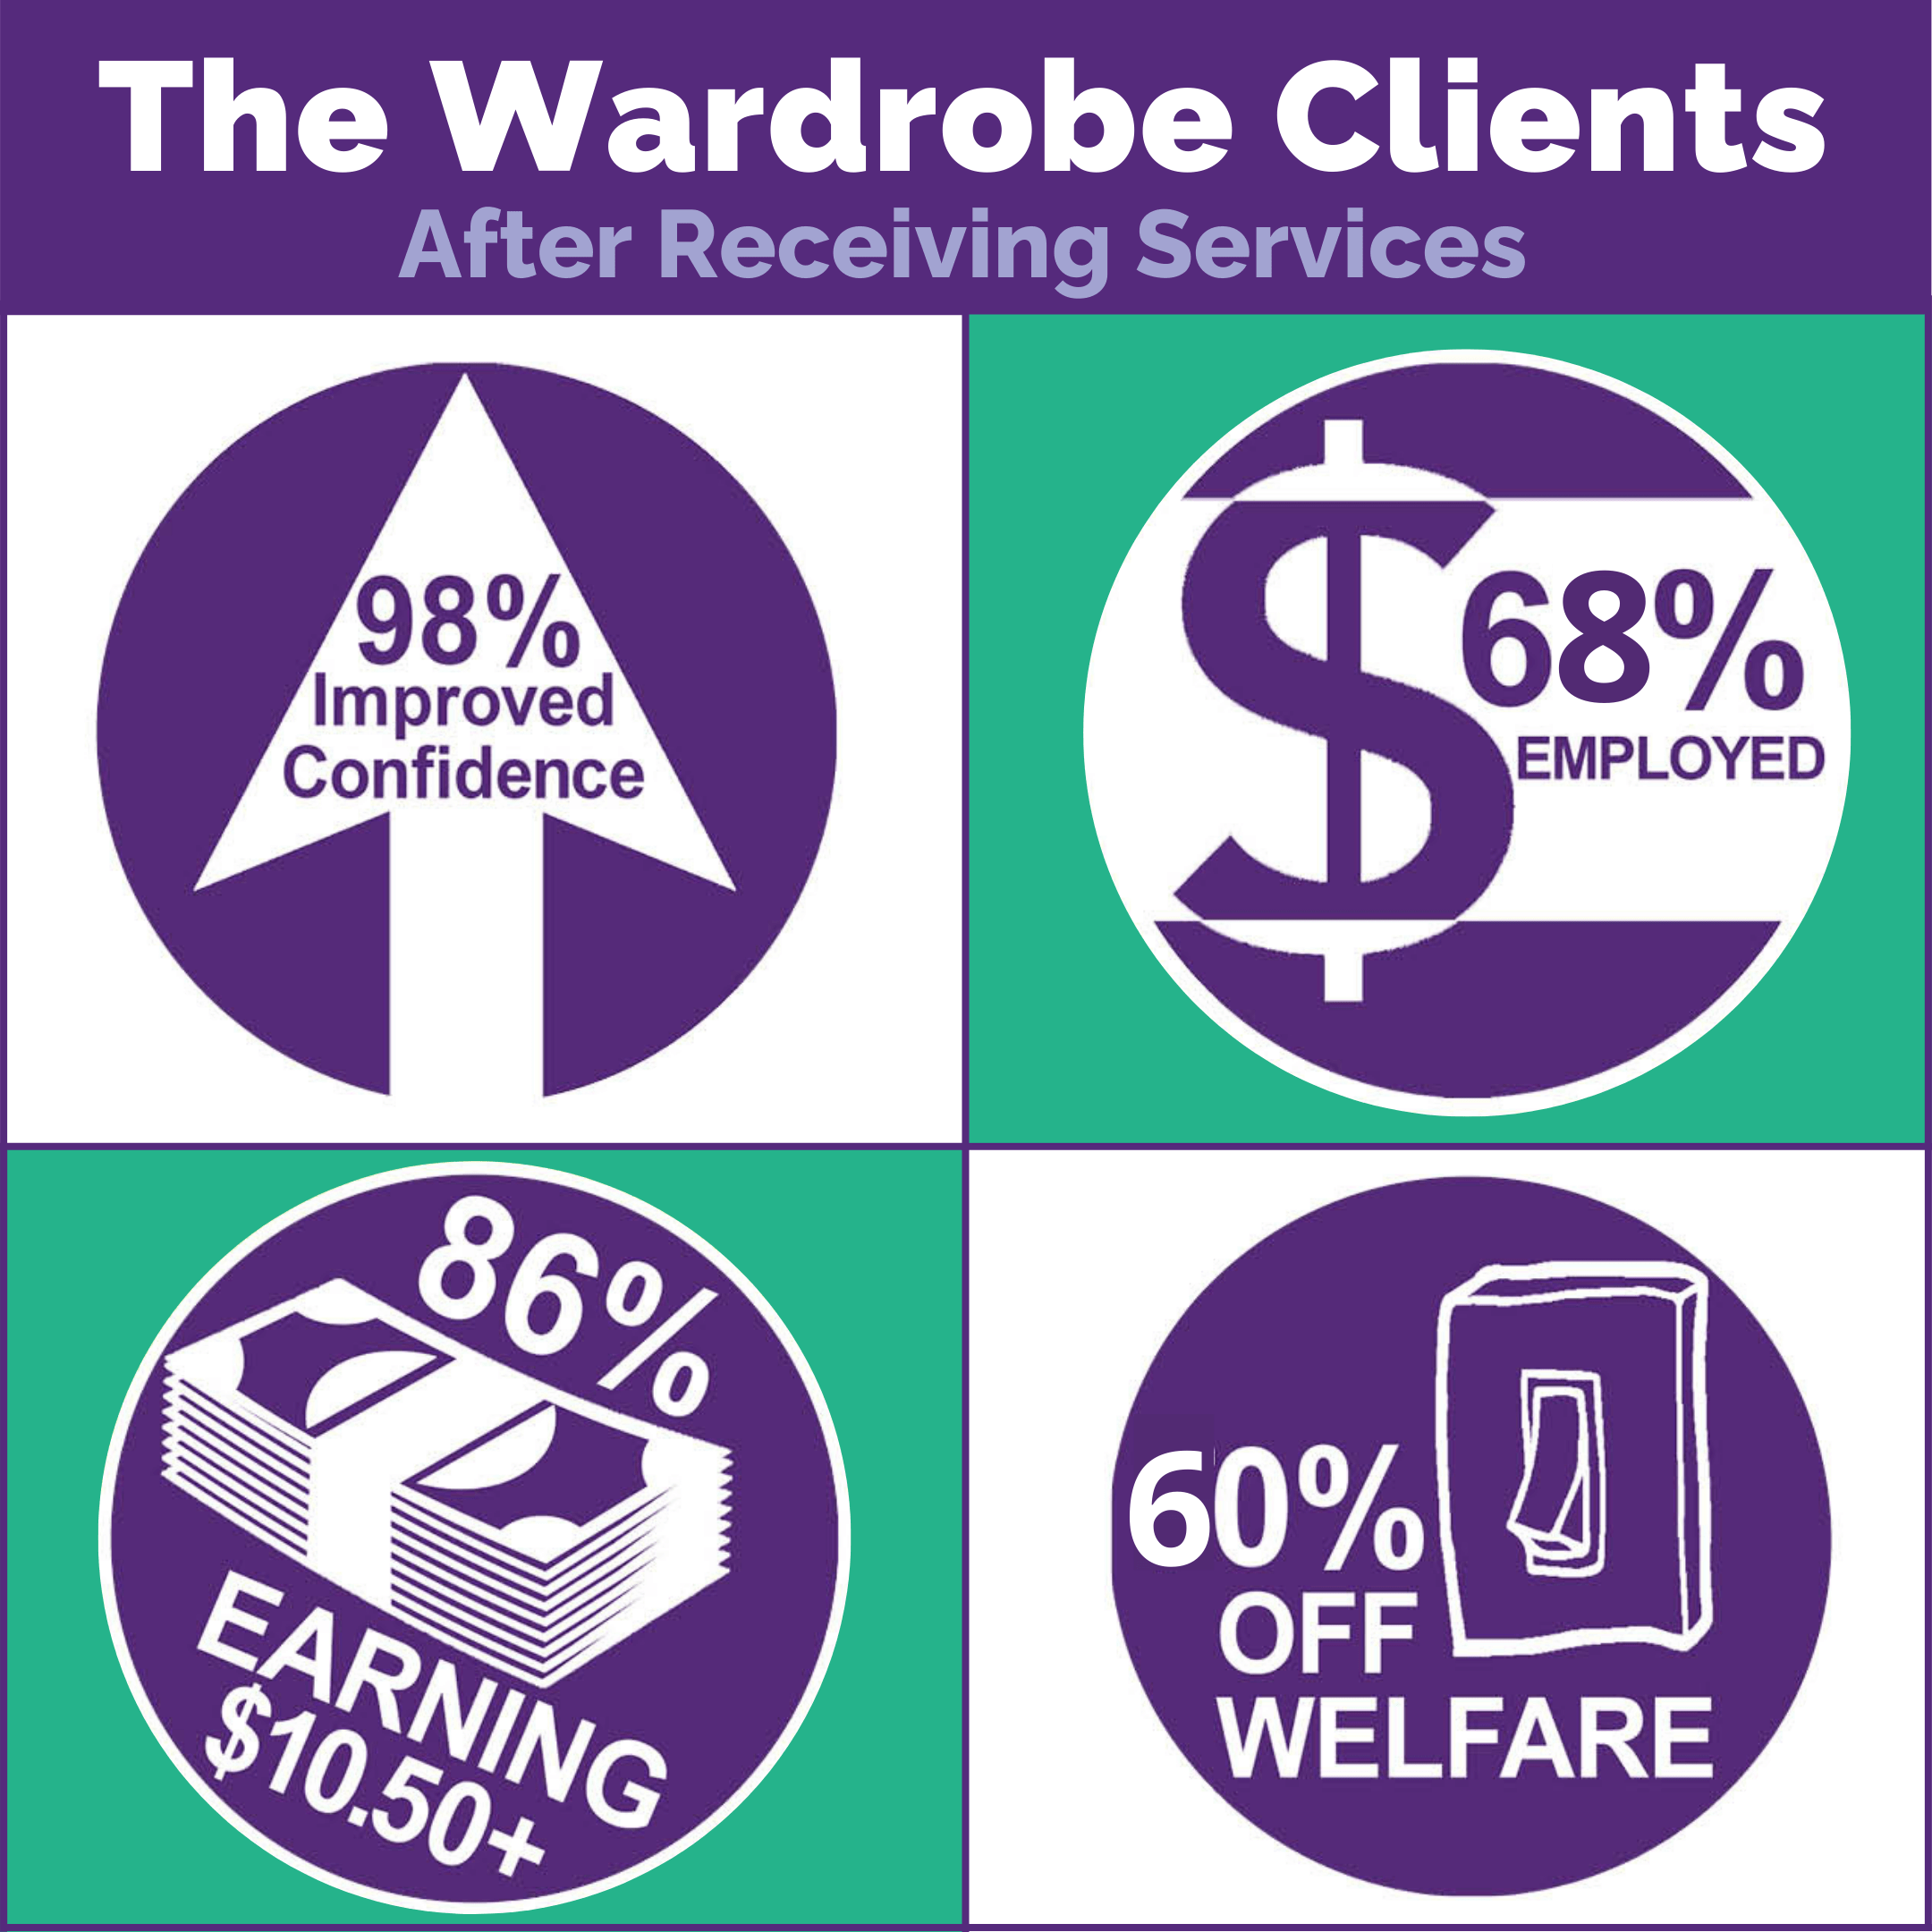 The Wardrobe Clients after receiving services are:  98% have improved confidence 68% are employed 86% are earning more than $10.50 per hour 60% are off welfare